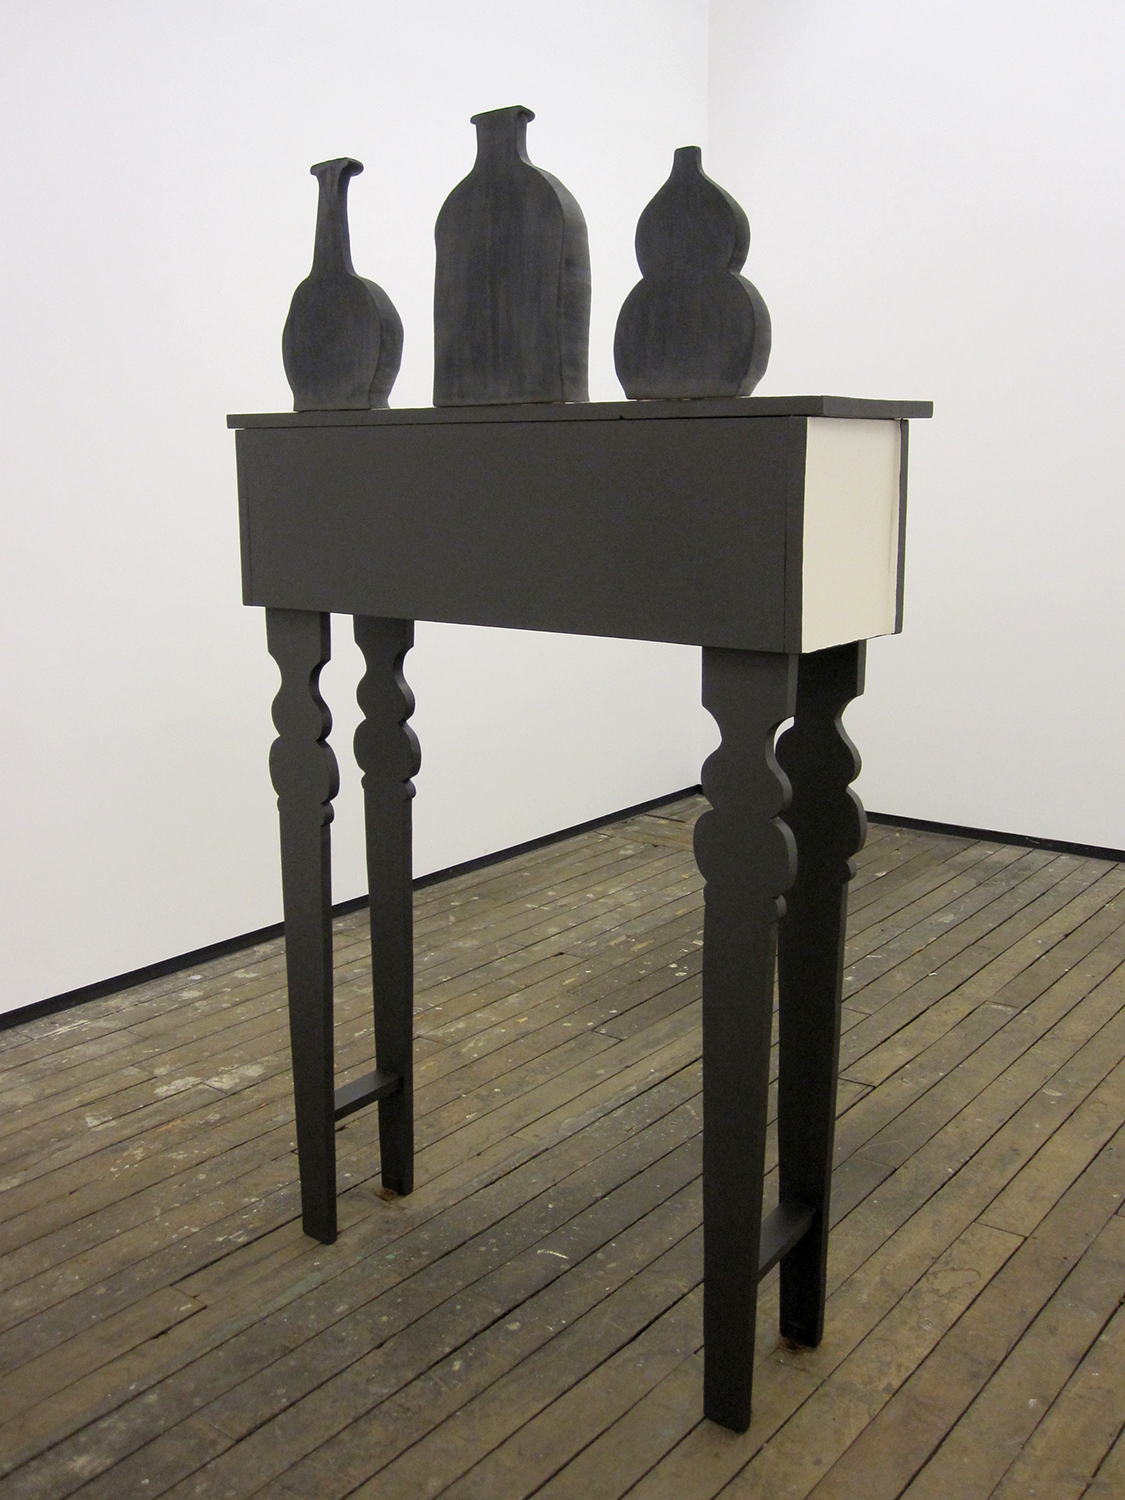 UNDEREMPLOYED , Zurcher Studio, curated by Josh Blackwell, NY, NY, 2011